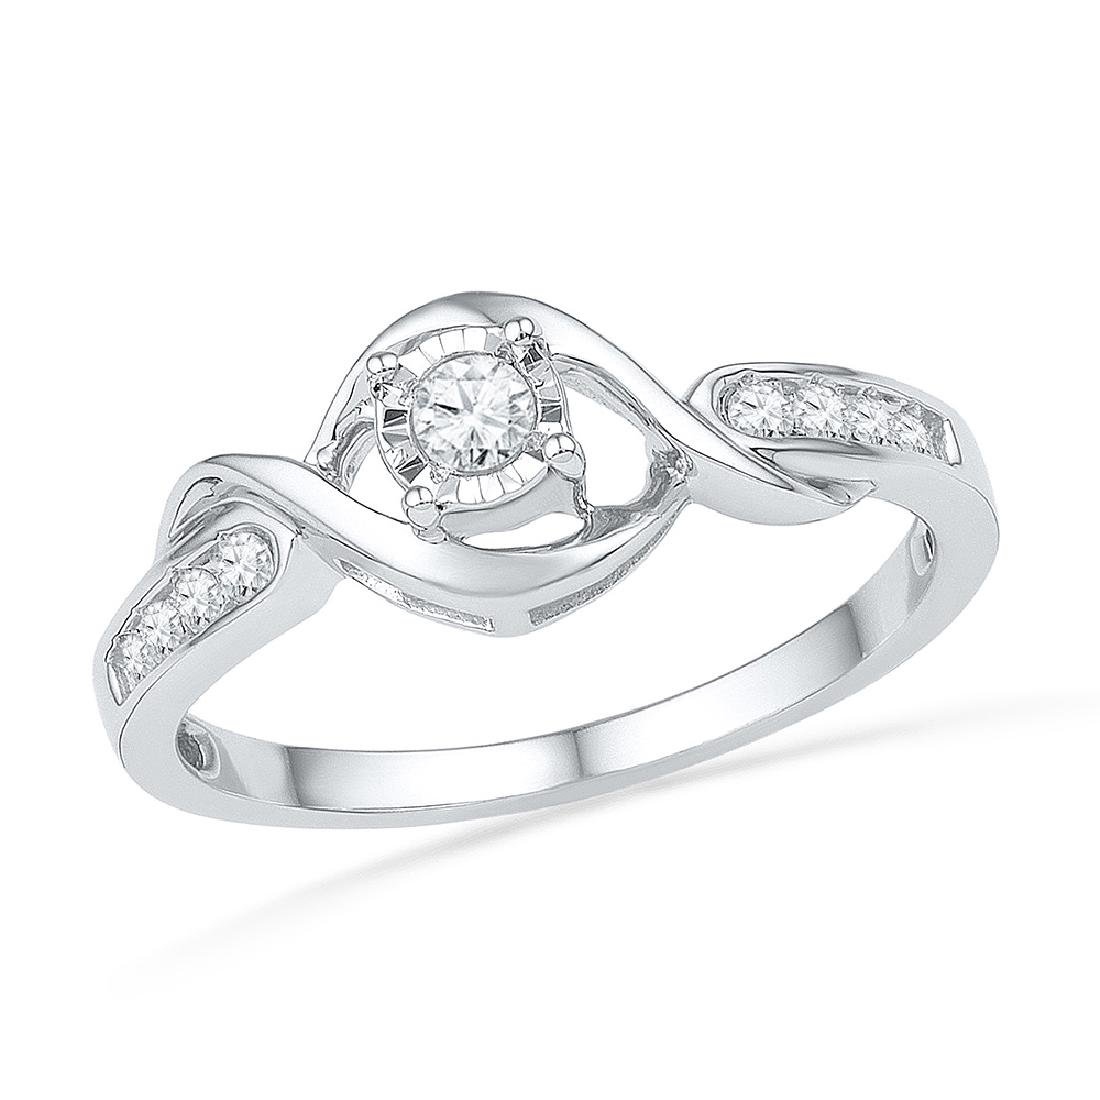 0.16 CTW Diamond Solitaire Promise Bridal Ring 10KT